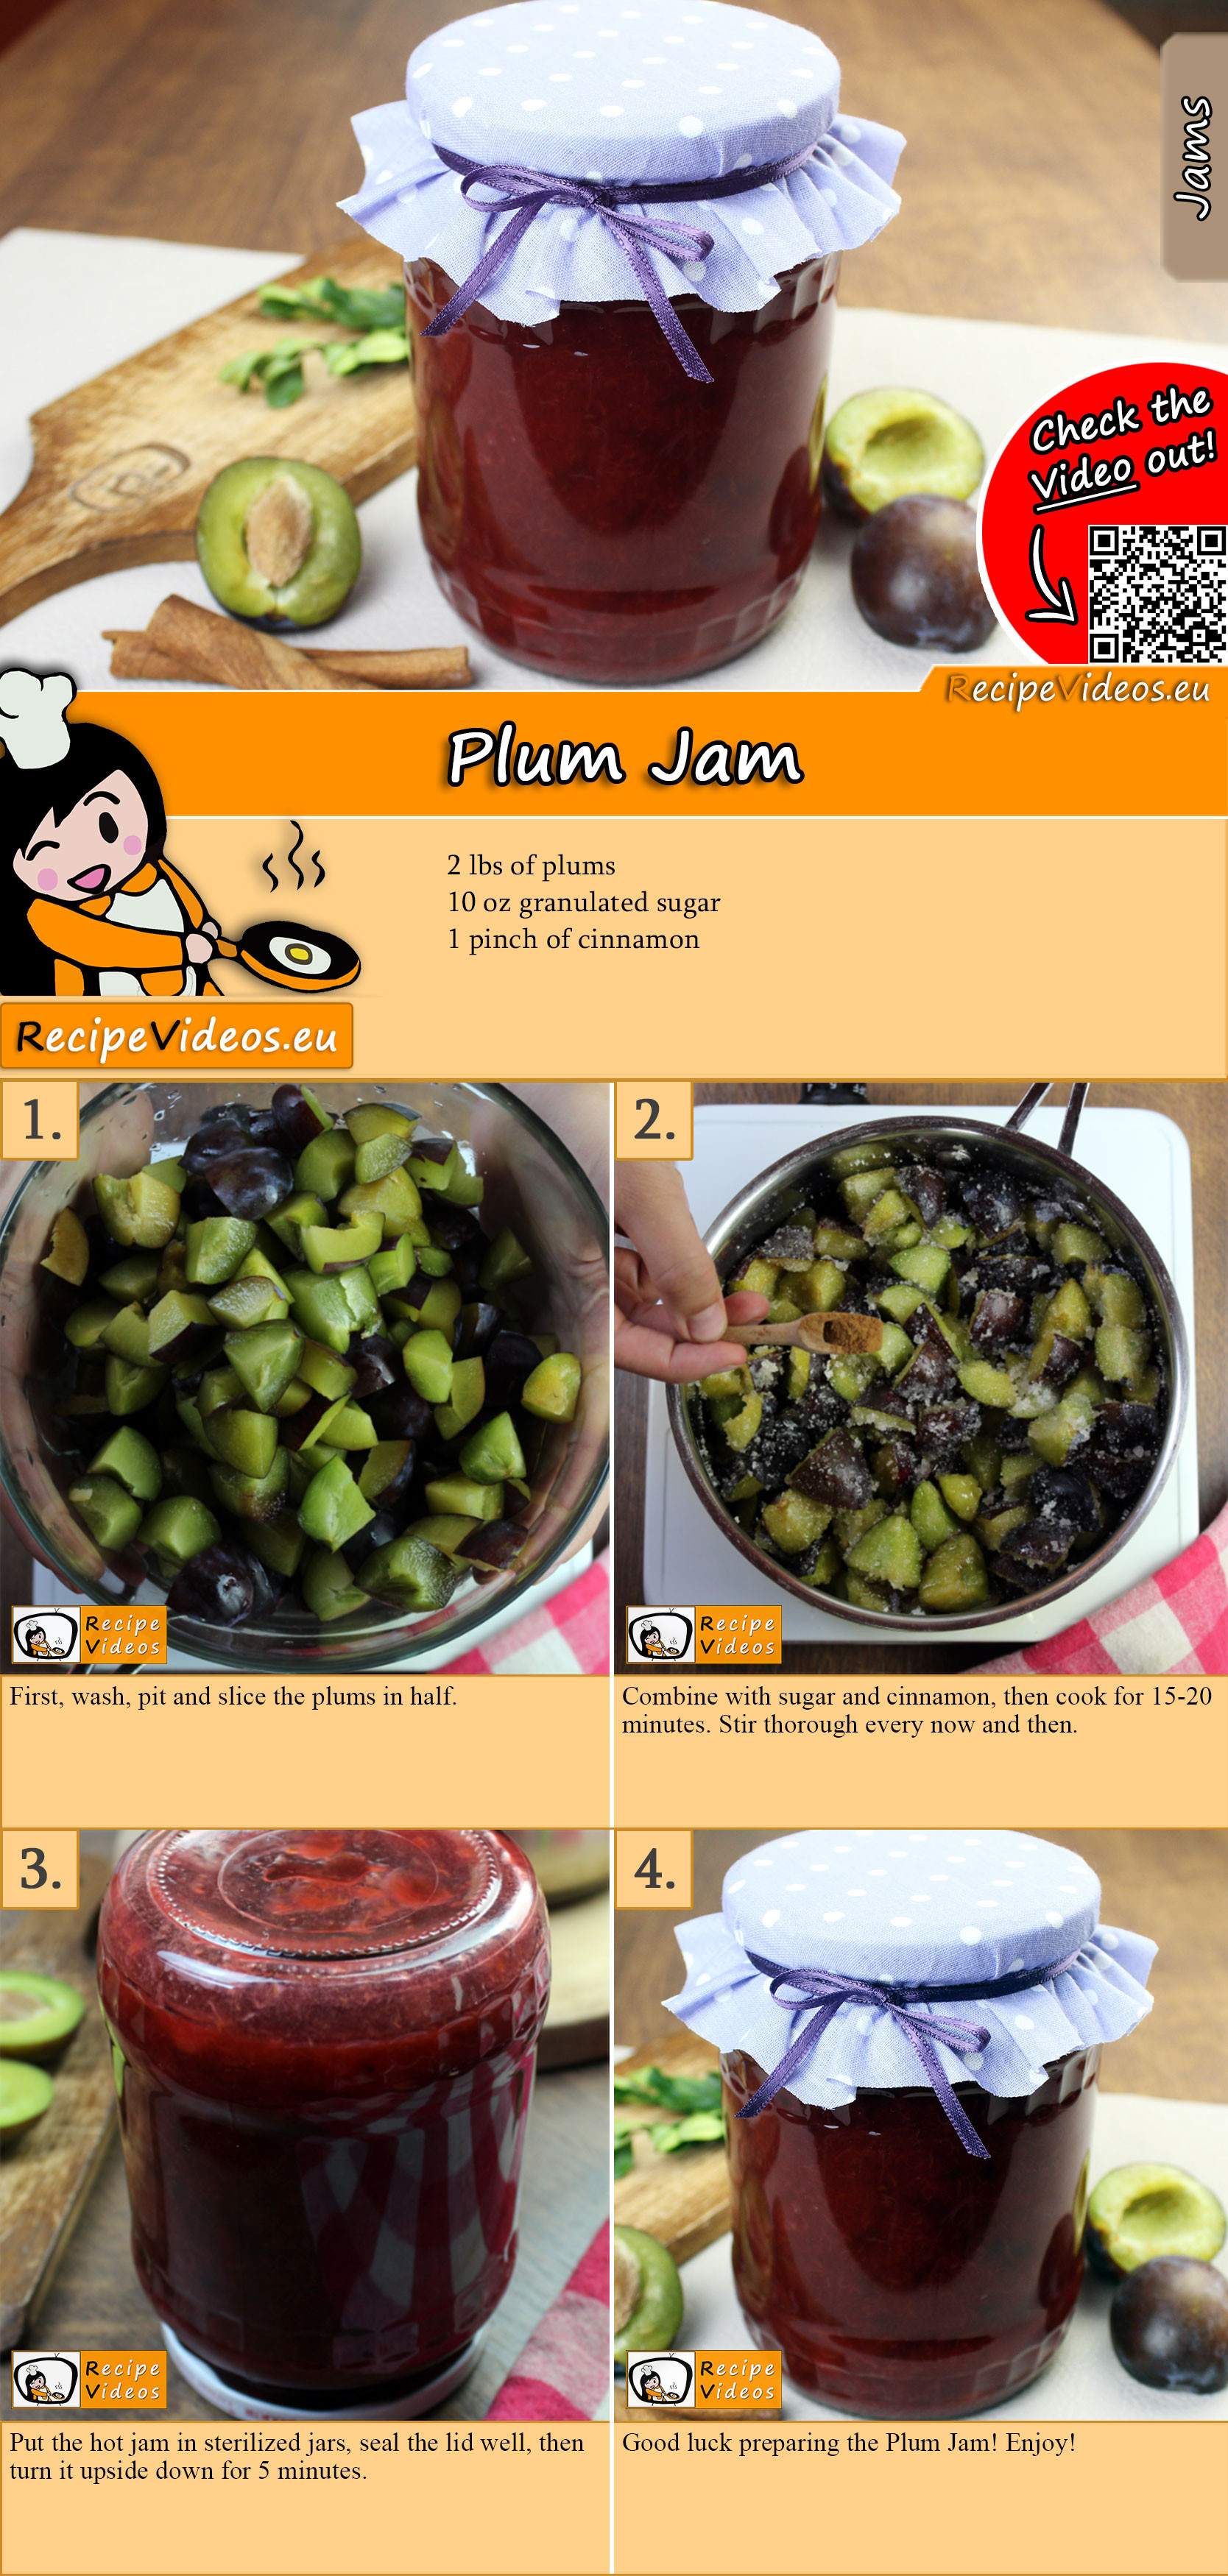 Plum Jam recipe with video